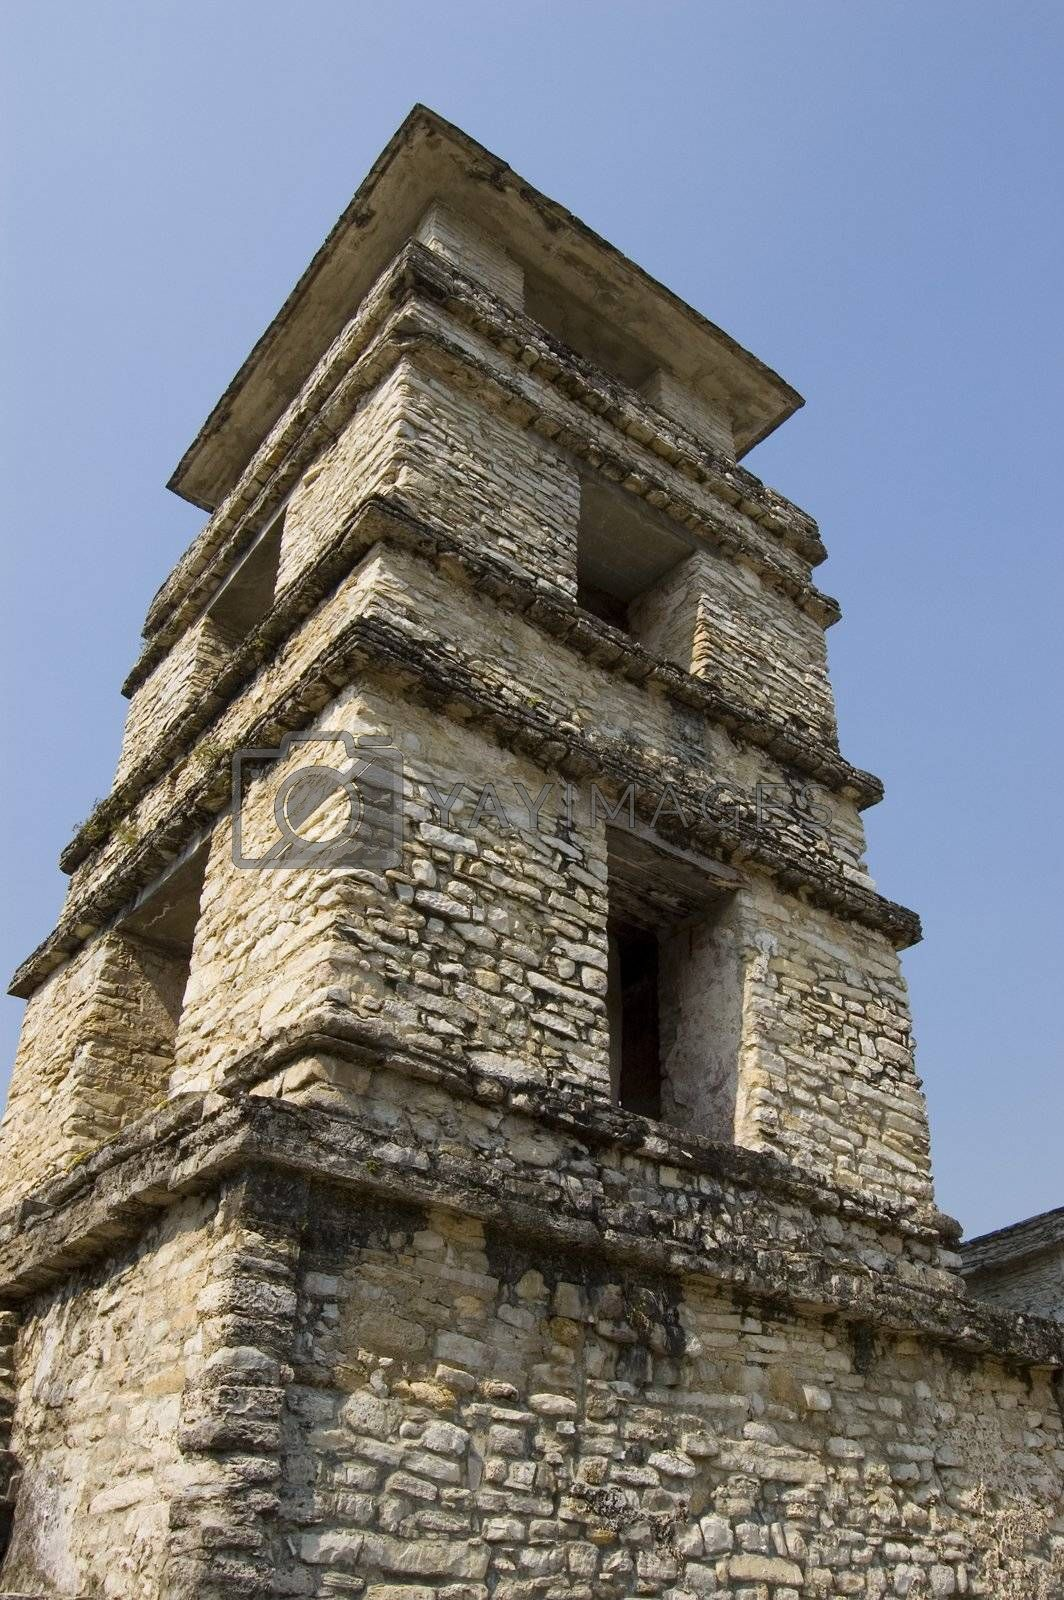 Detail of Tower in the castle at the Paleque Mayan Ruins